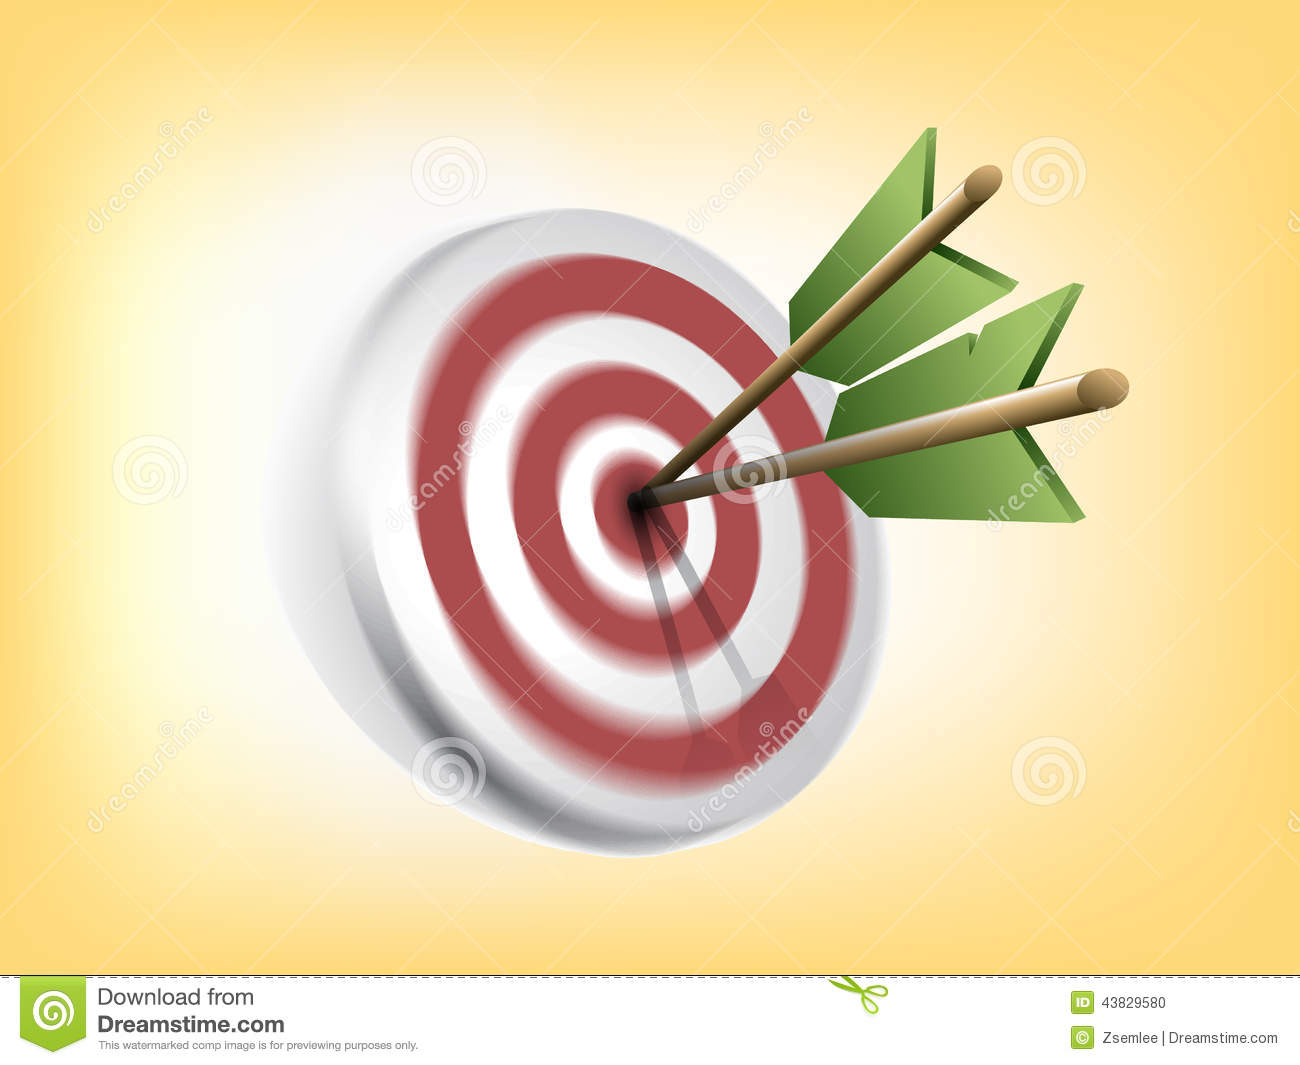 Blurred Target with Arrows